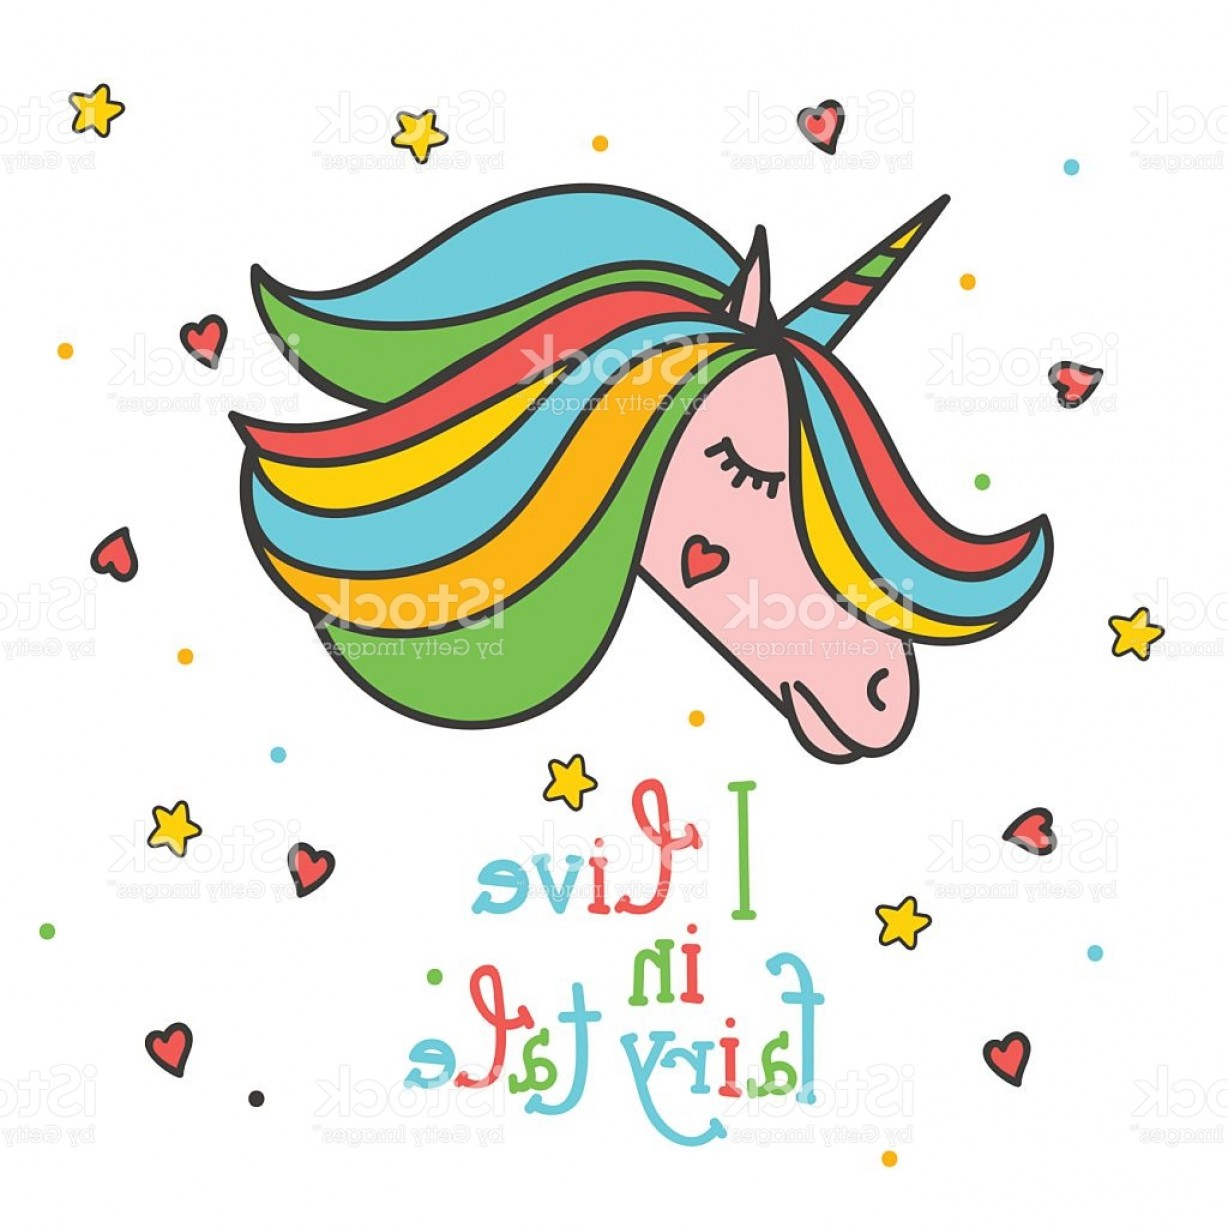 Vectors Heart And Star: Colorful Patch With Unicorn Heart Star Hand Drawn Vector Illustration Gm